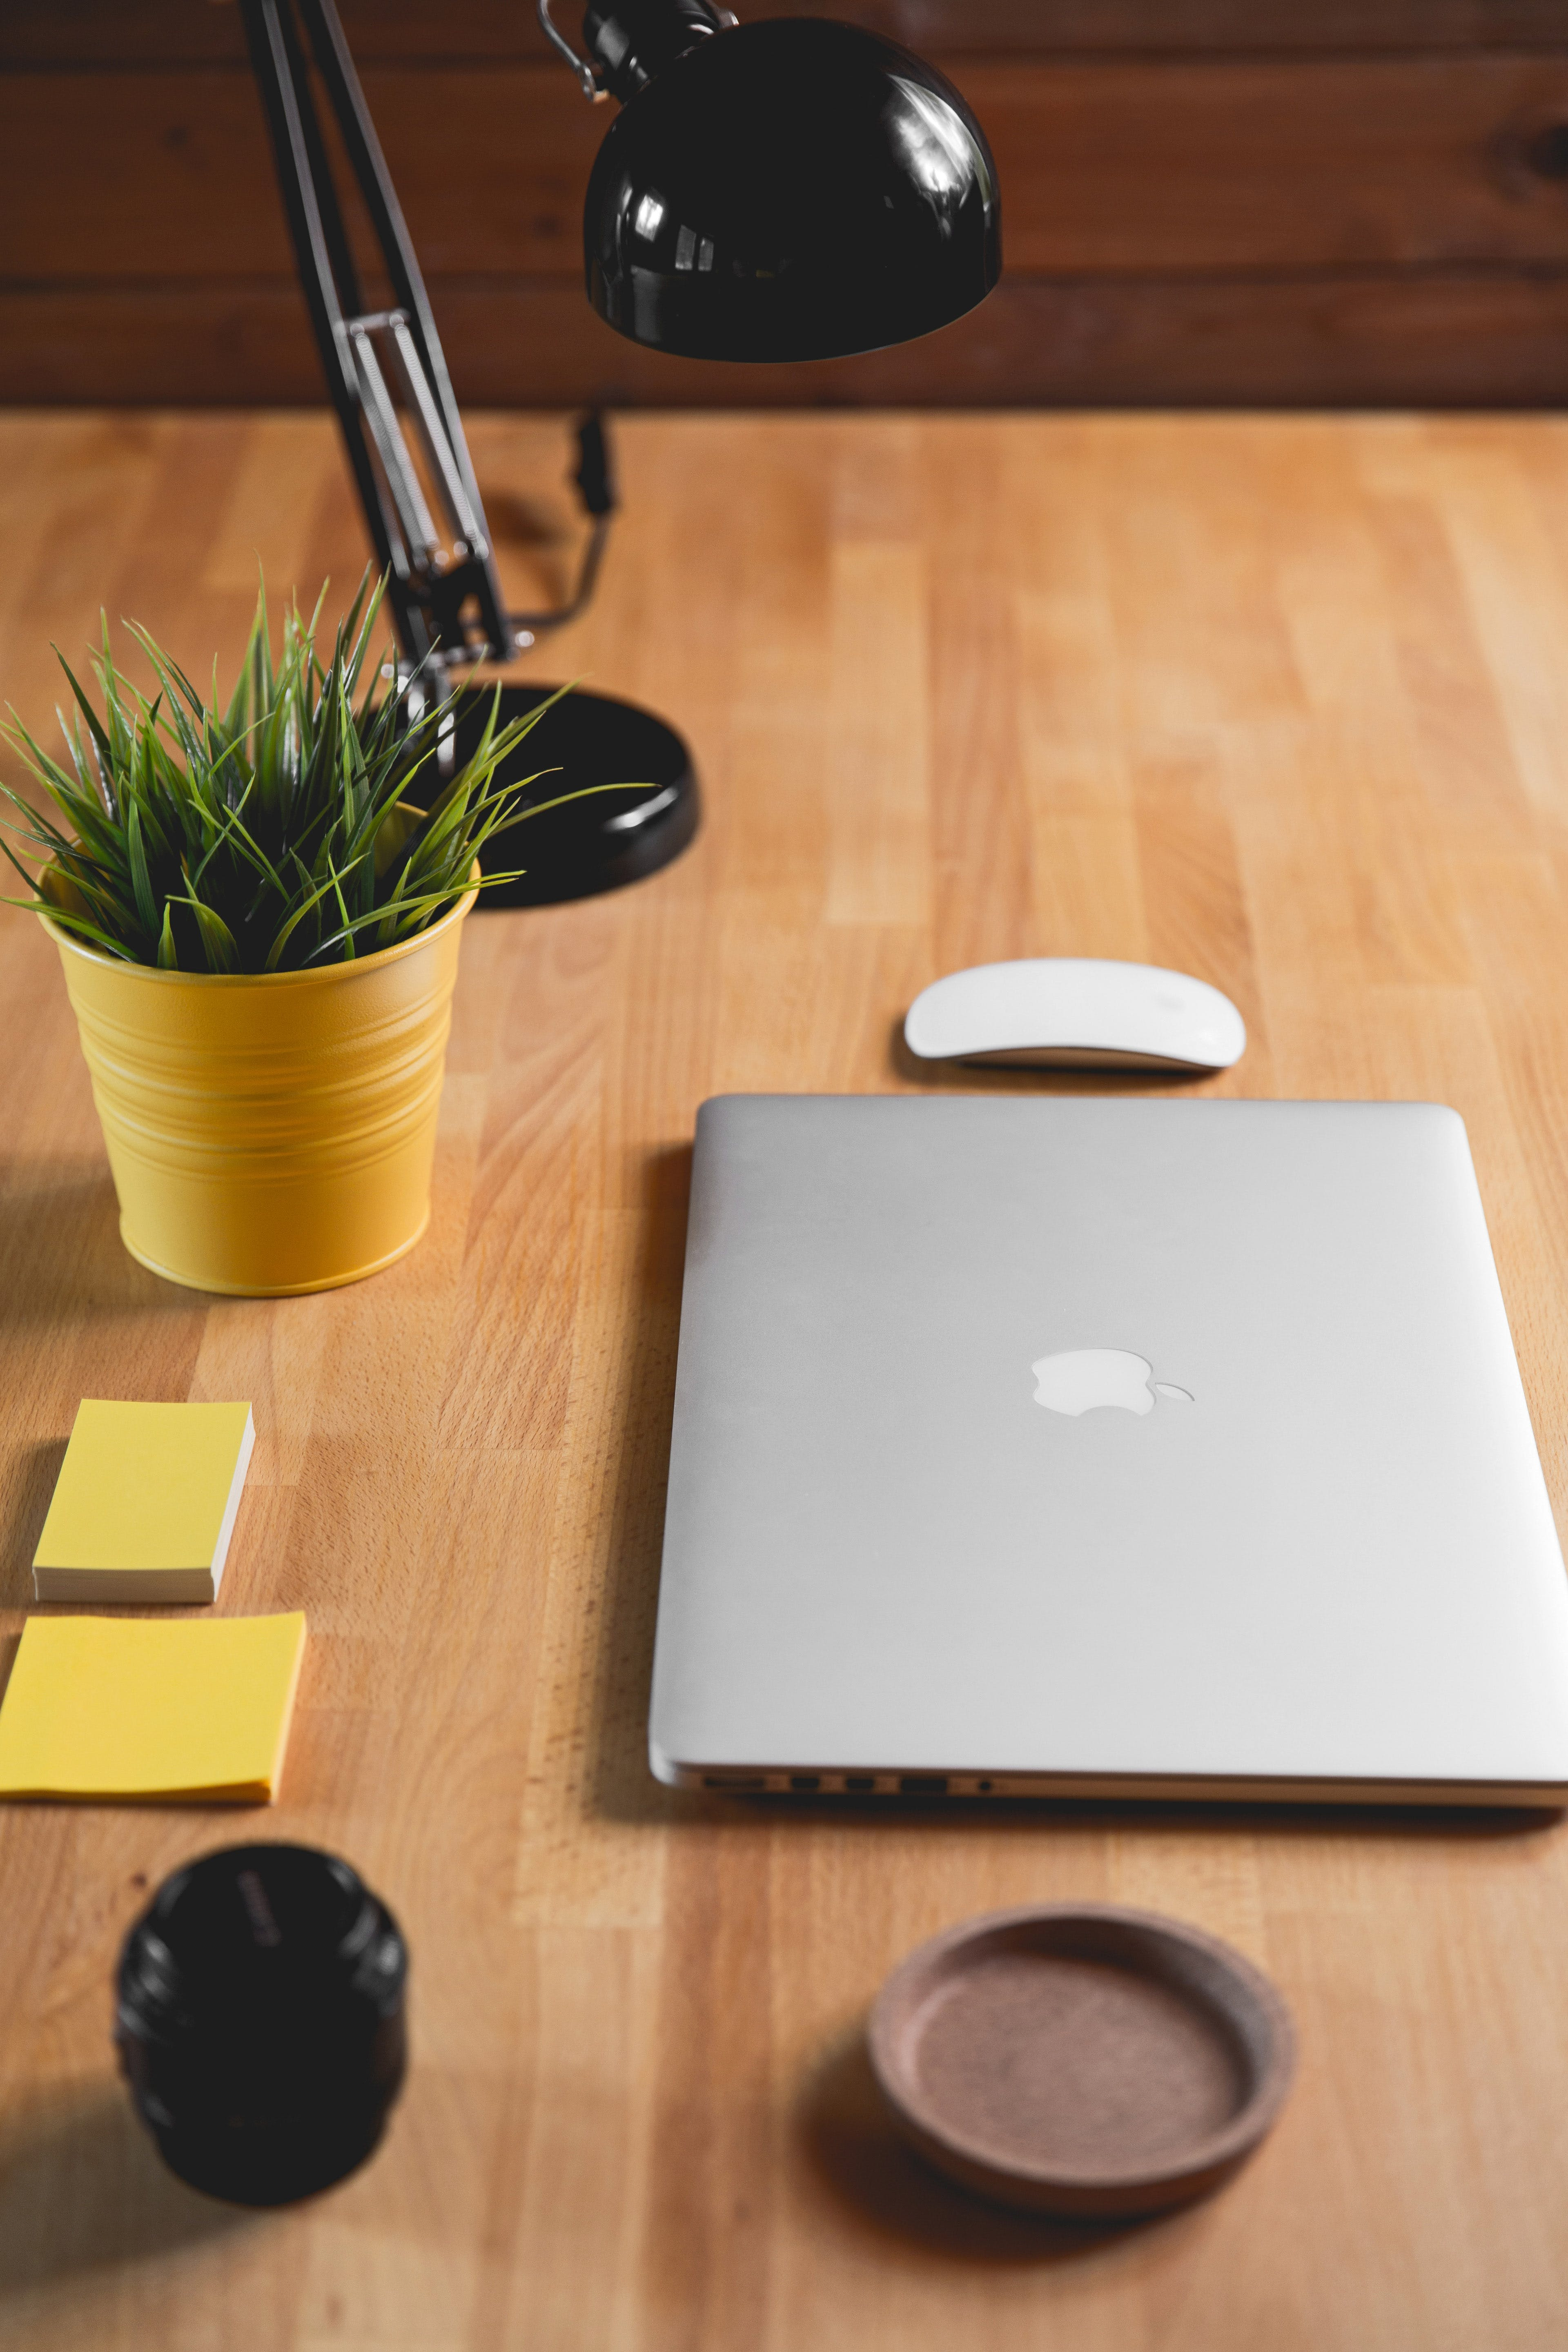 Silver Macbook Beside Apple Magic Mouse on Table